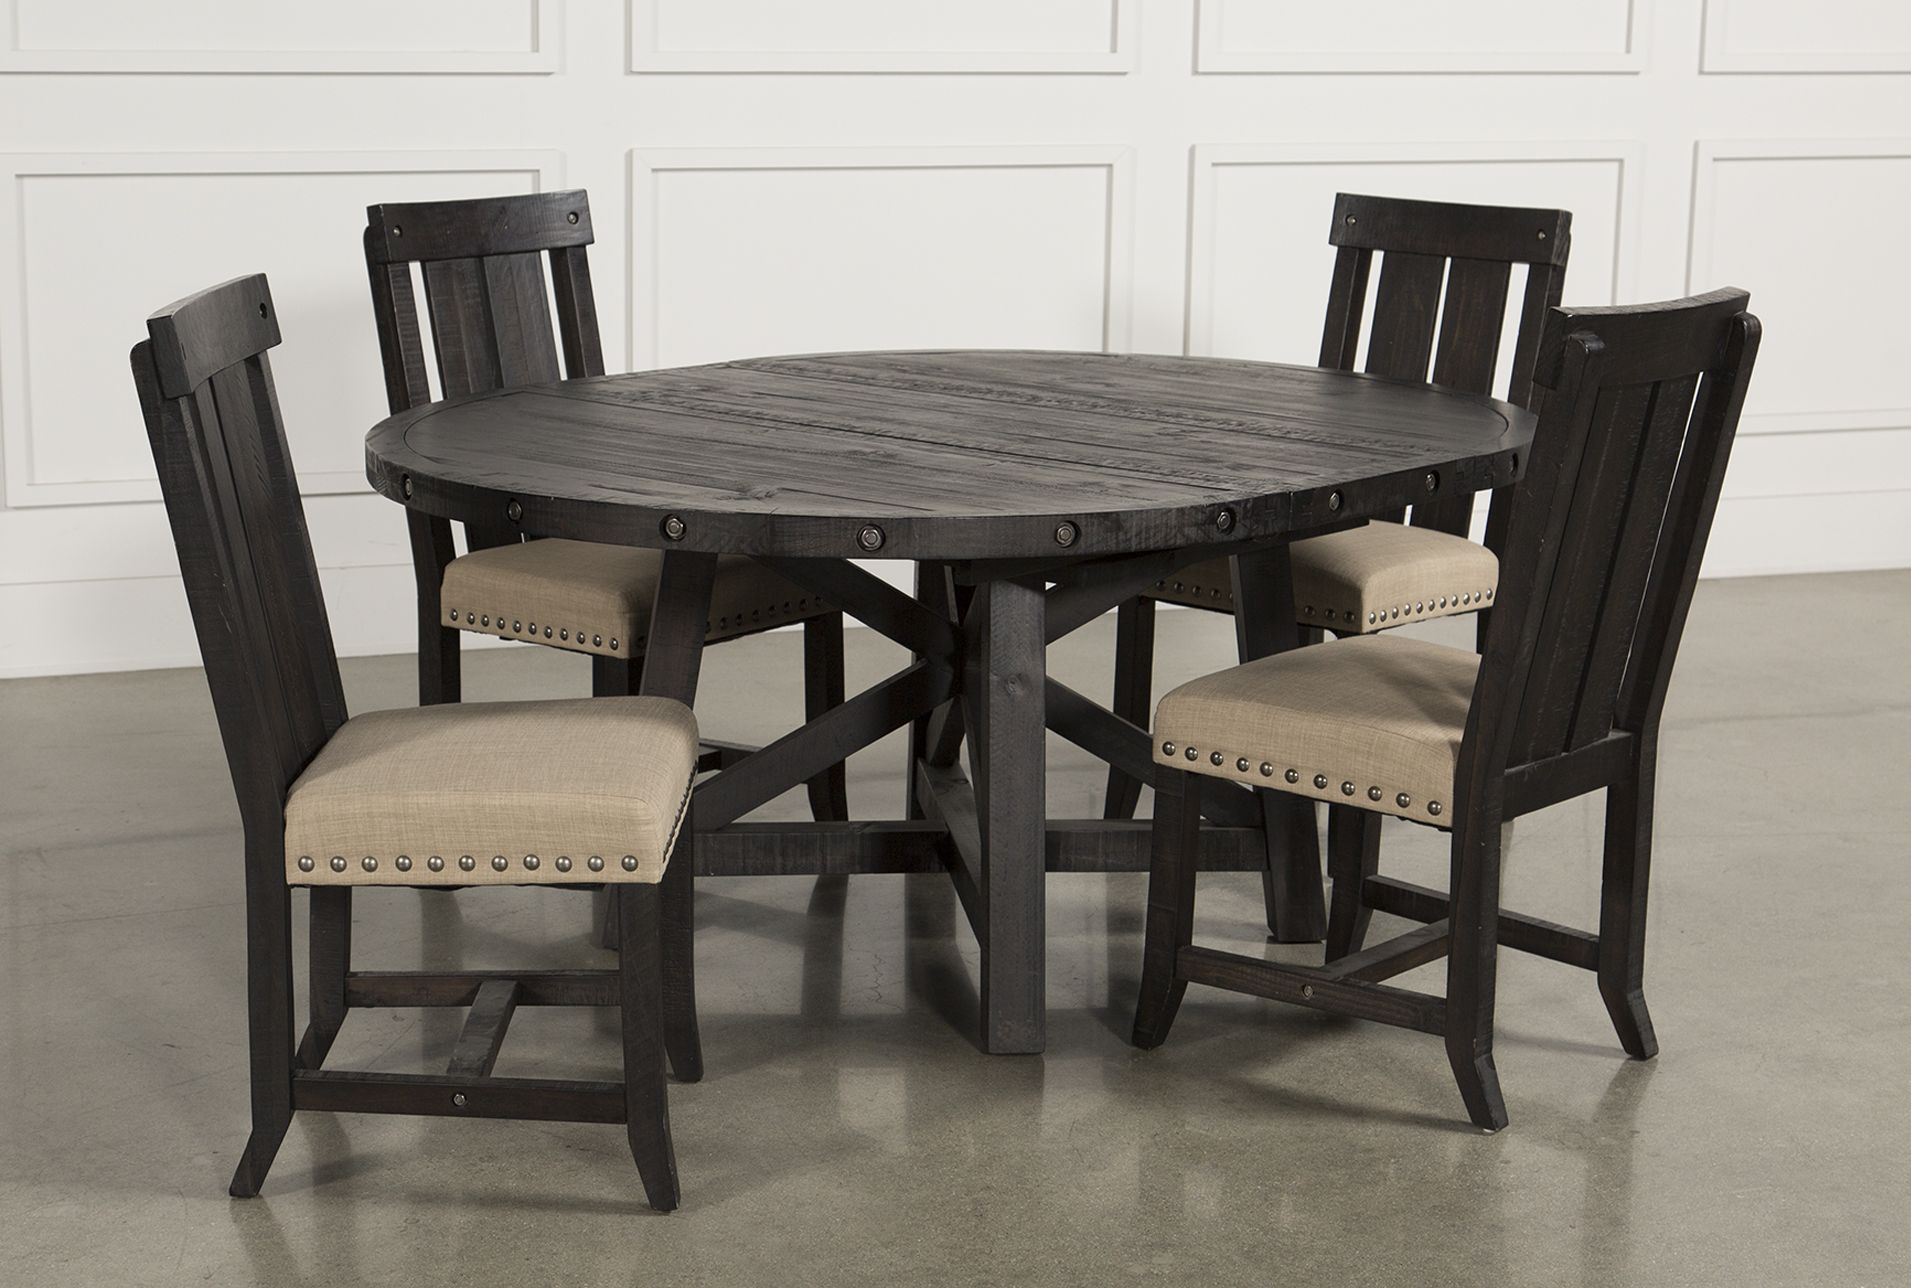 8dc6ea26c5 Jaxon 5 Piece Extension Round Dining Set W/Wood Chairs | Products ...